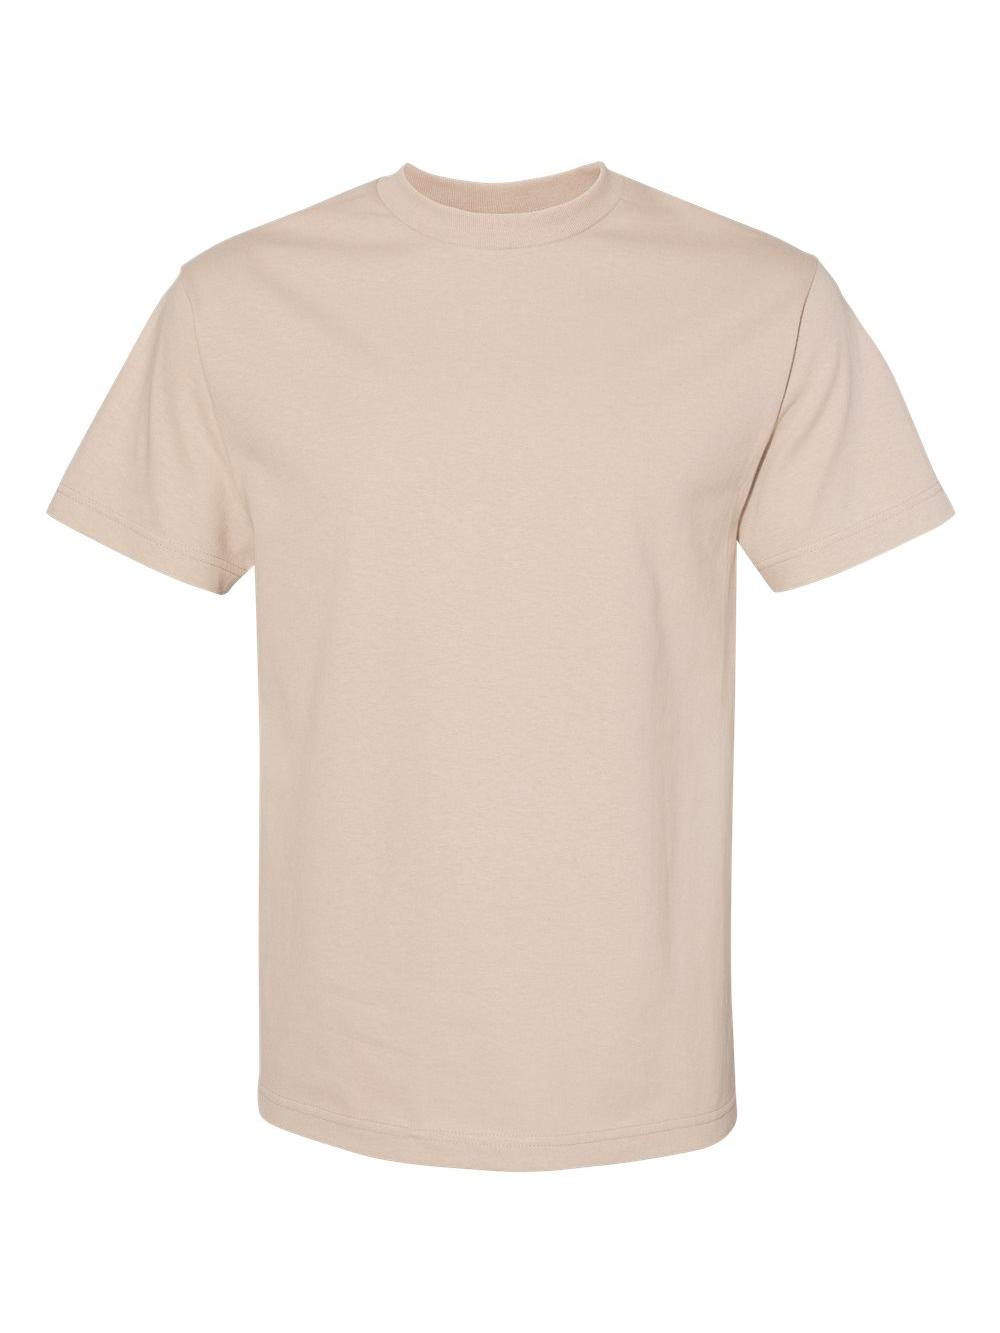 ALSTYLE-Classic-T-Shirt-1301 thumbnail 77